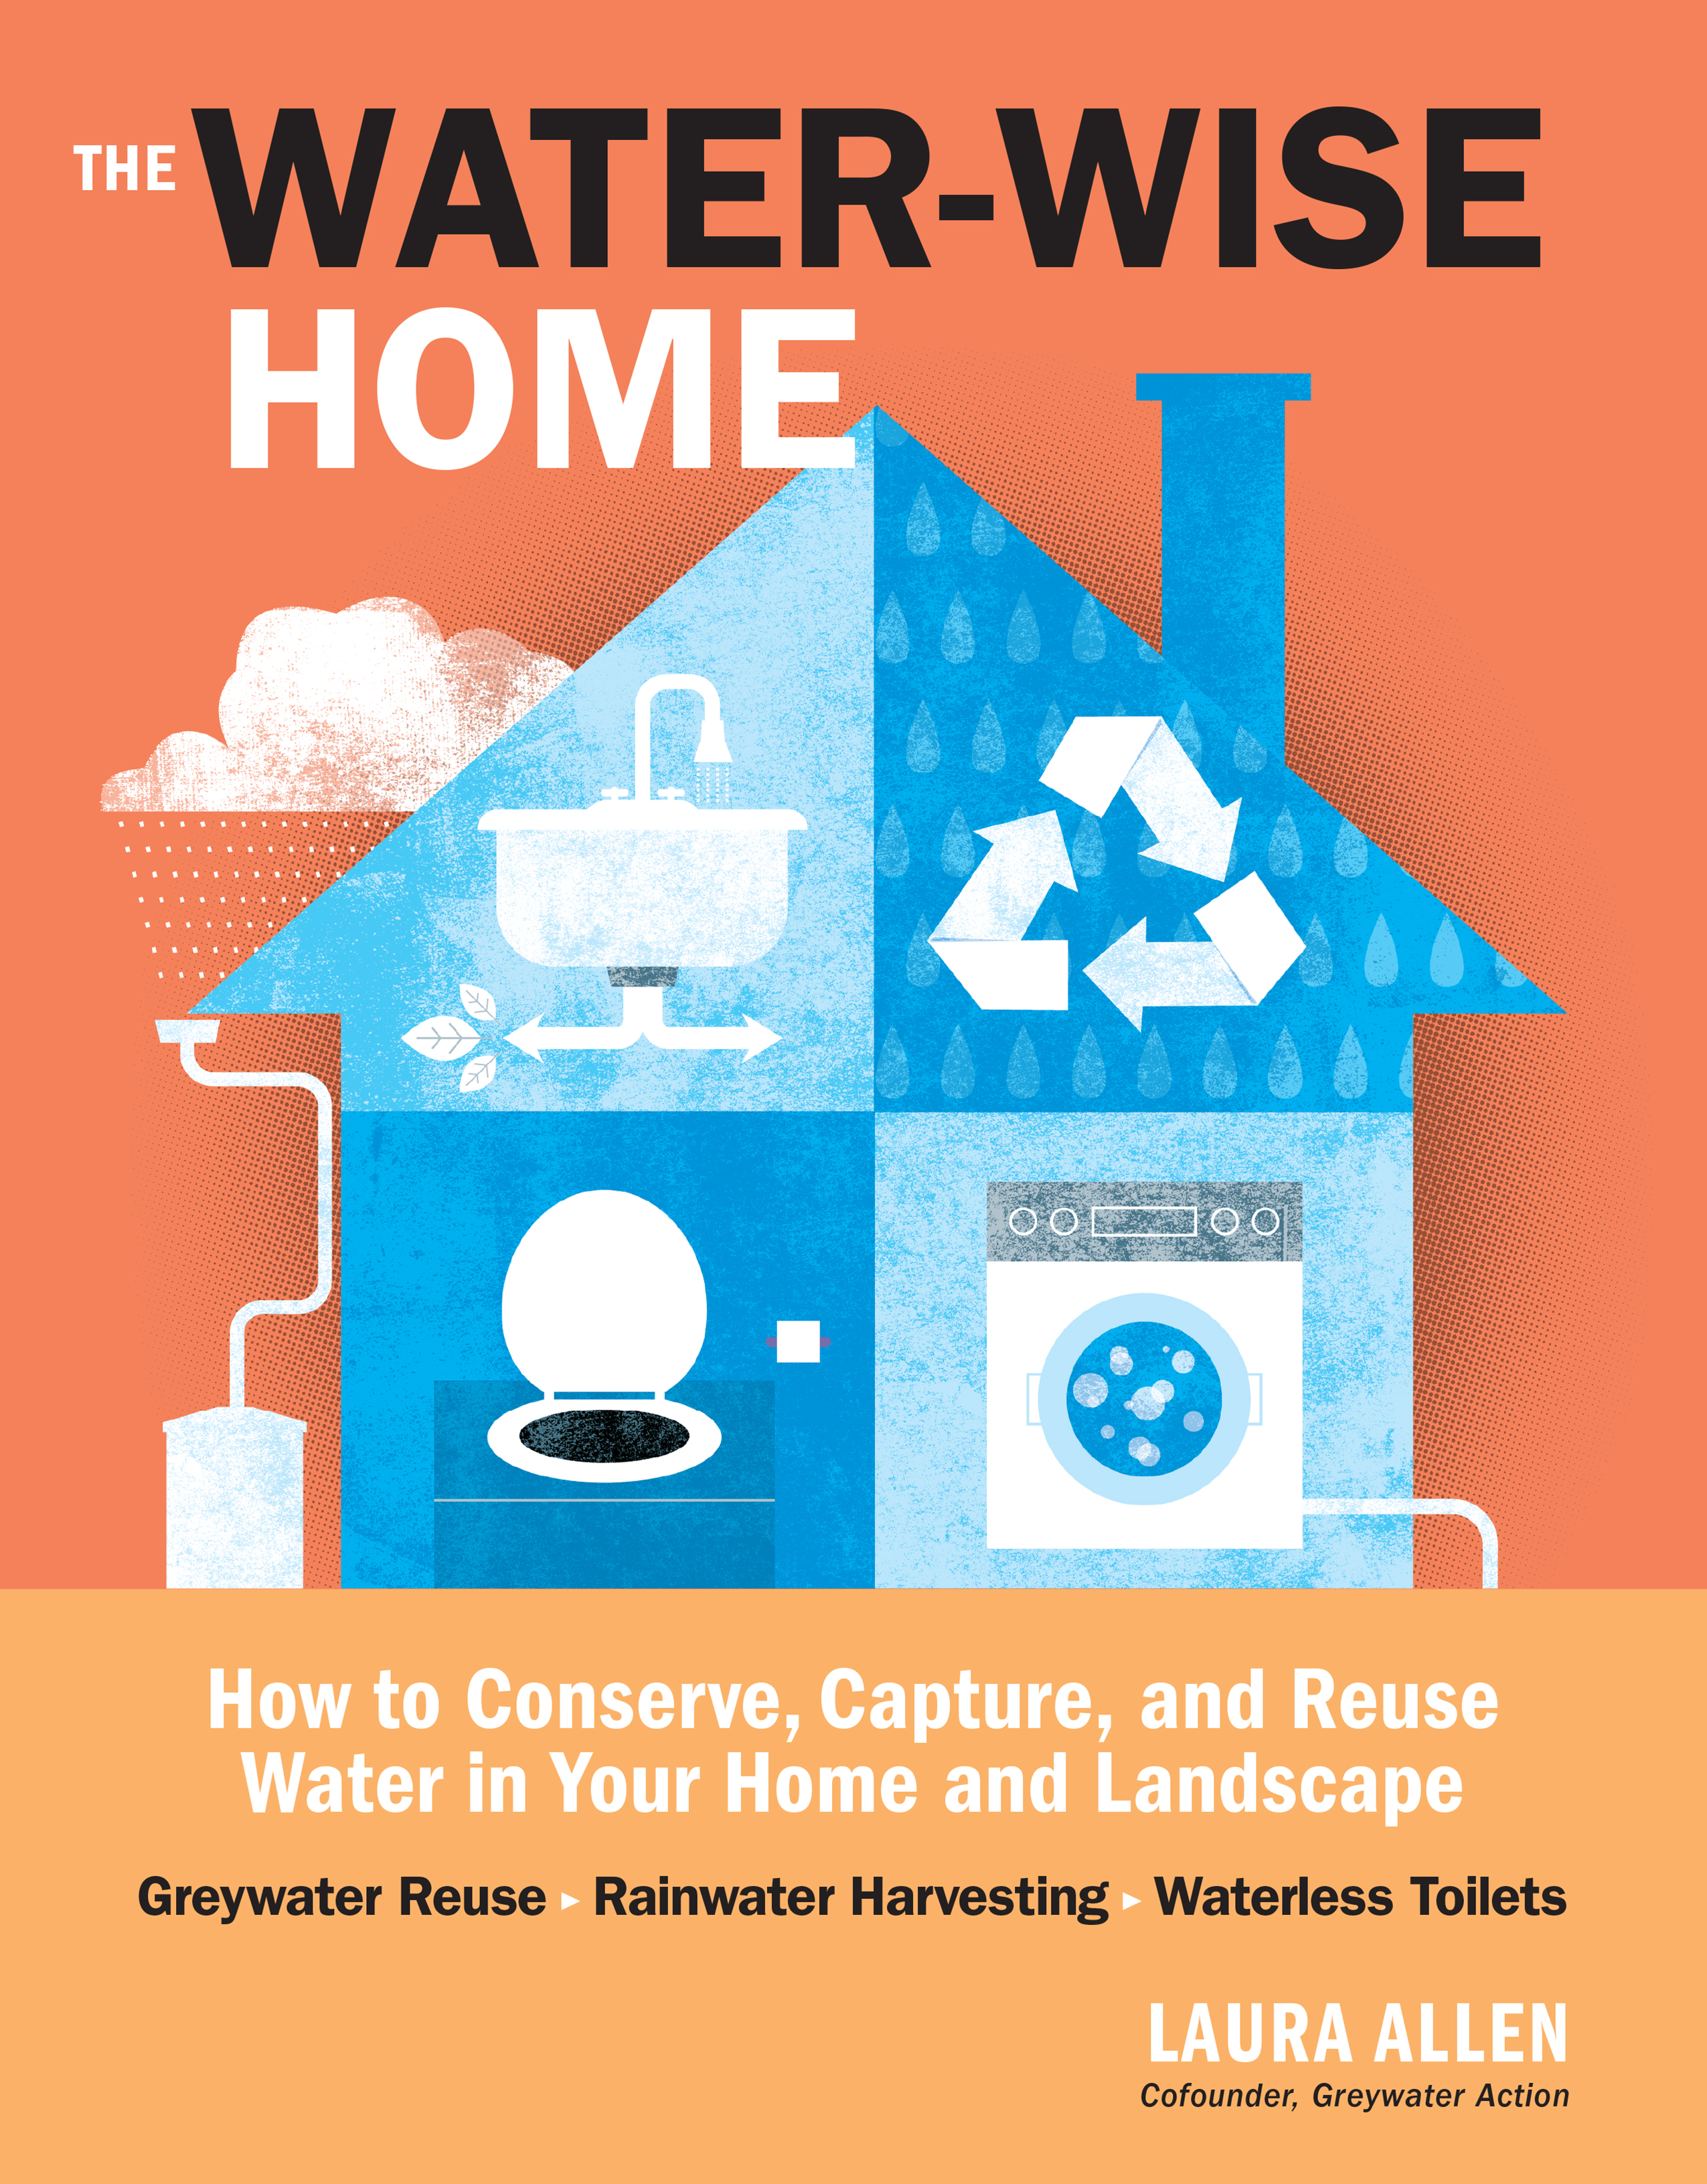 The Water-Wise Home How to Conserve, Capture, and Reuse Water in Your Home and Landscape - Laura Allen